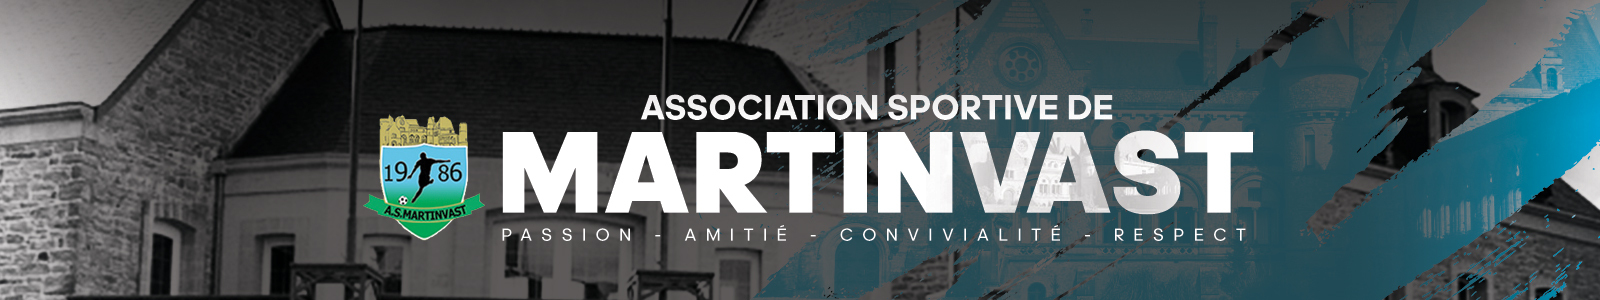 Association Sportive de MARTINVAST : site officiel du club de foot de martinvast - footeo